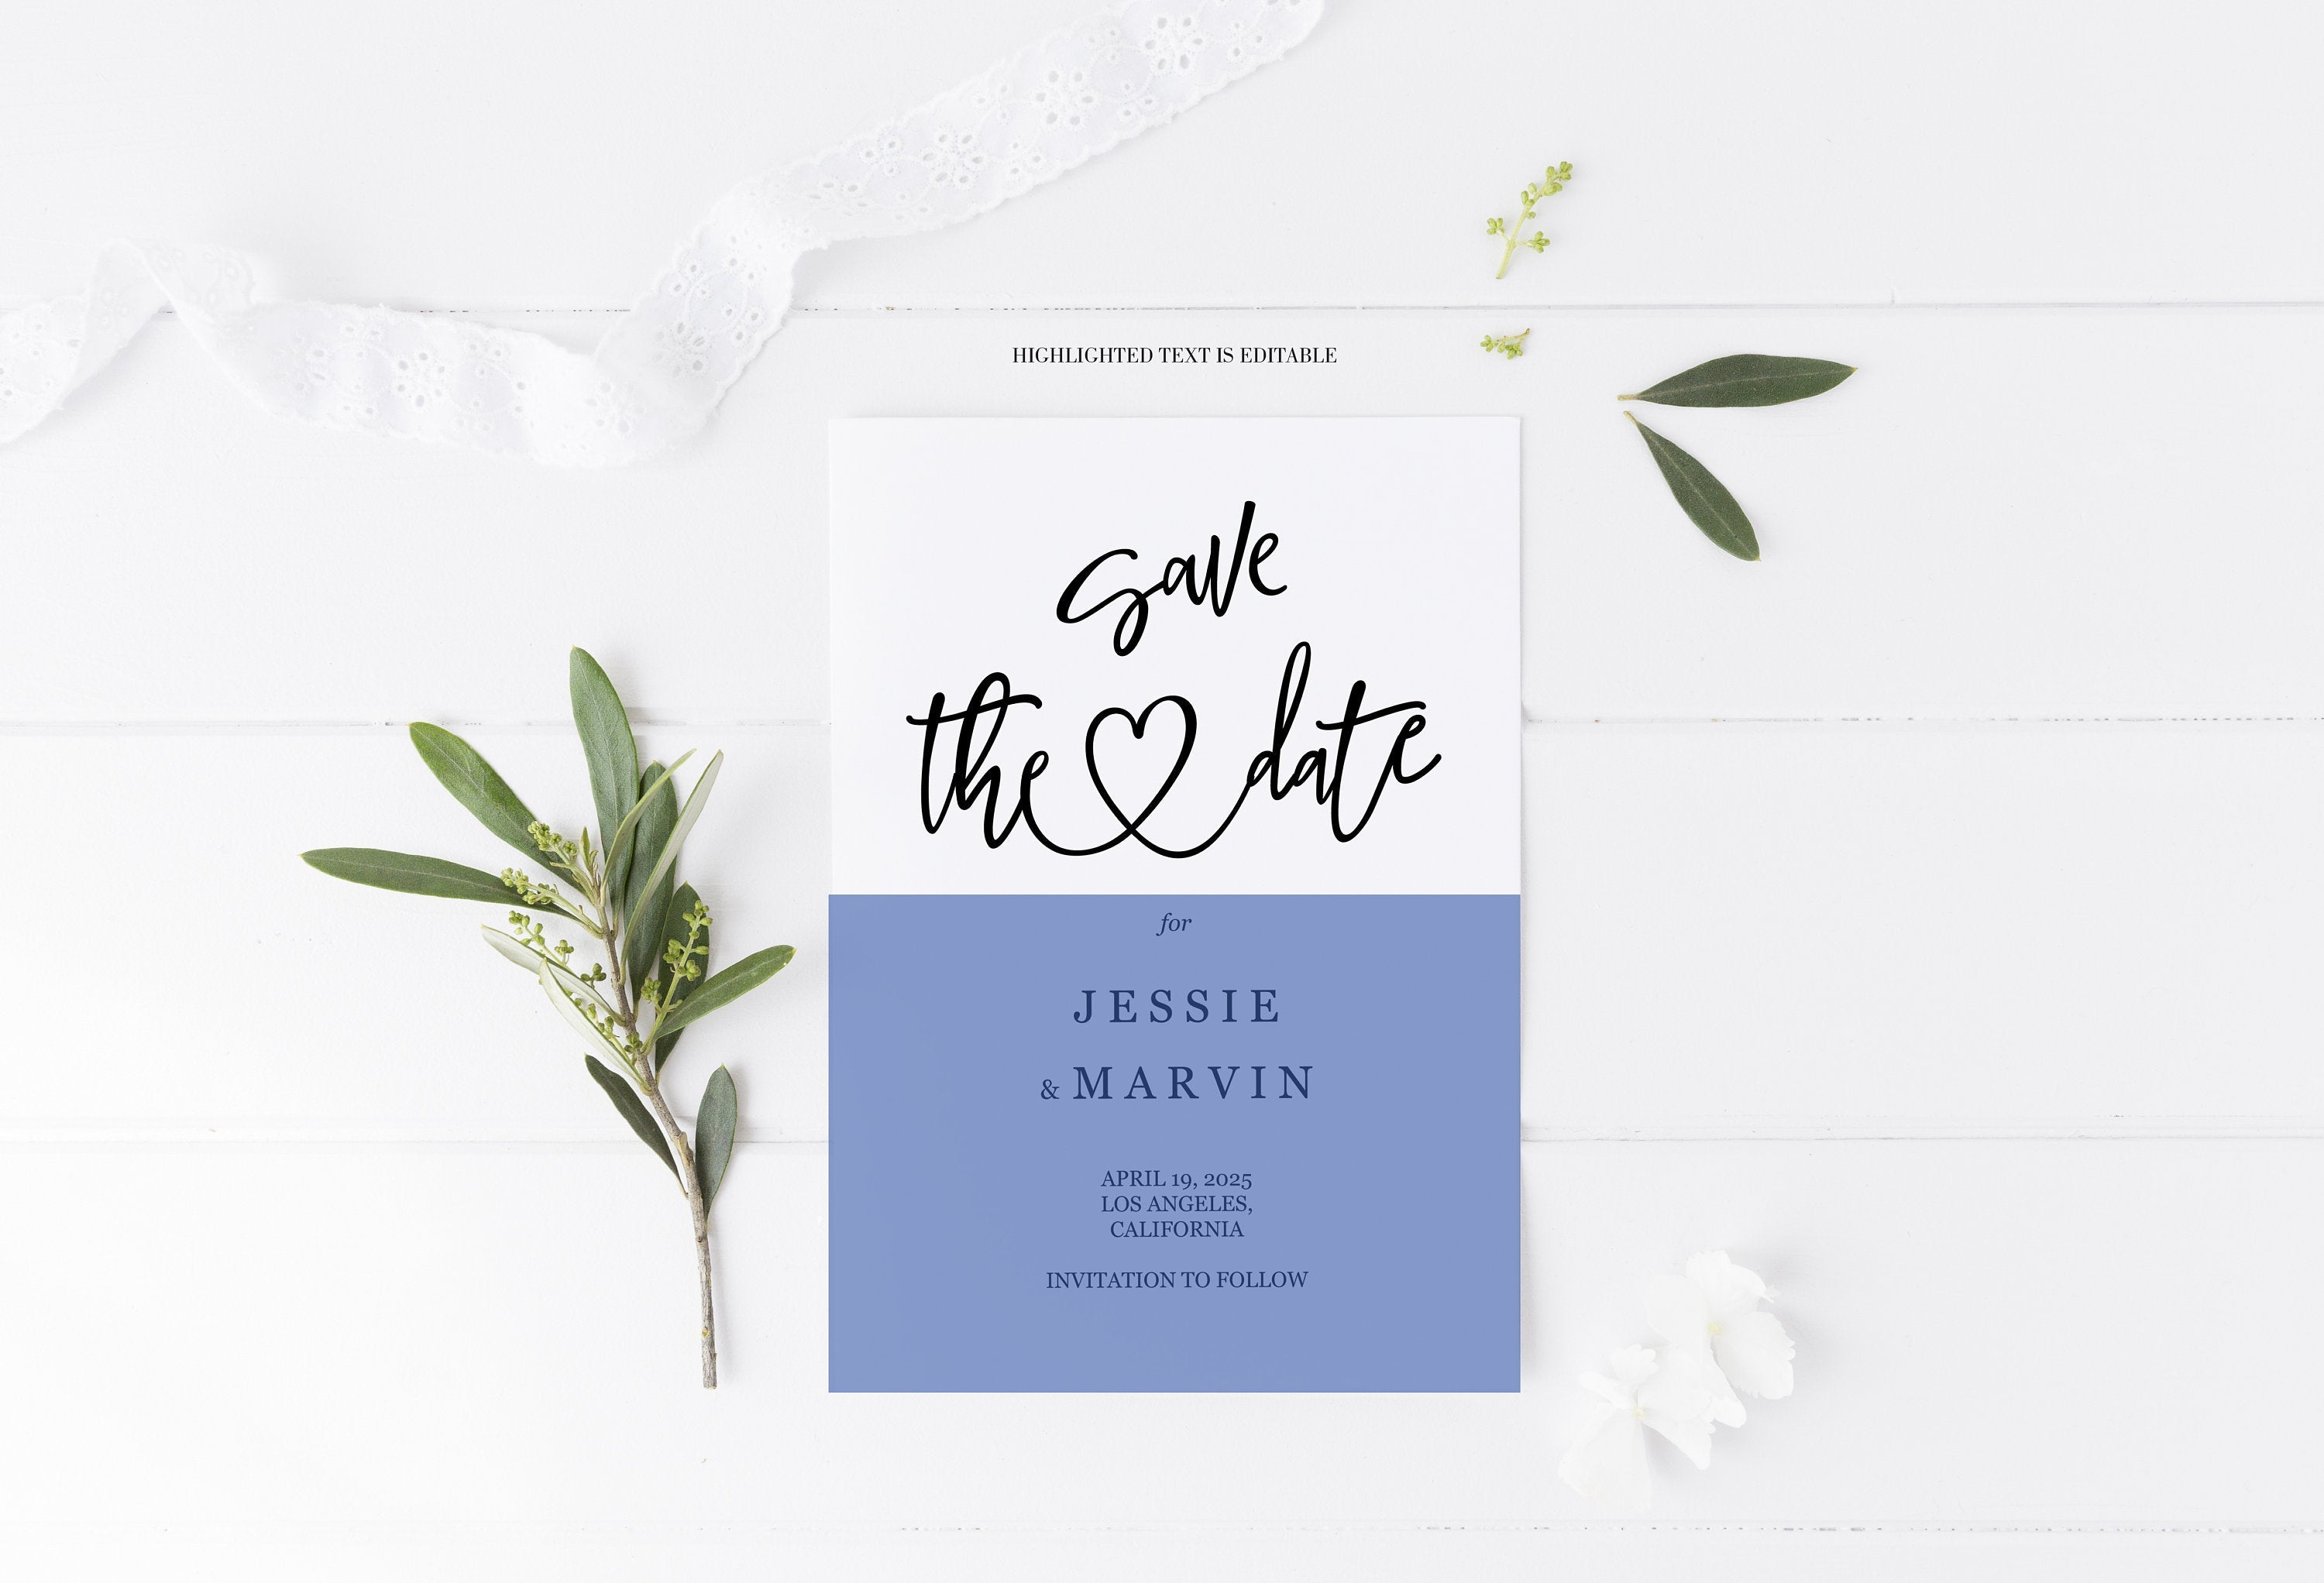 Save the Date Card Instant Download Printable Editable Template Wedding Invite - JESSICA